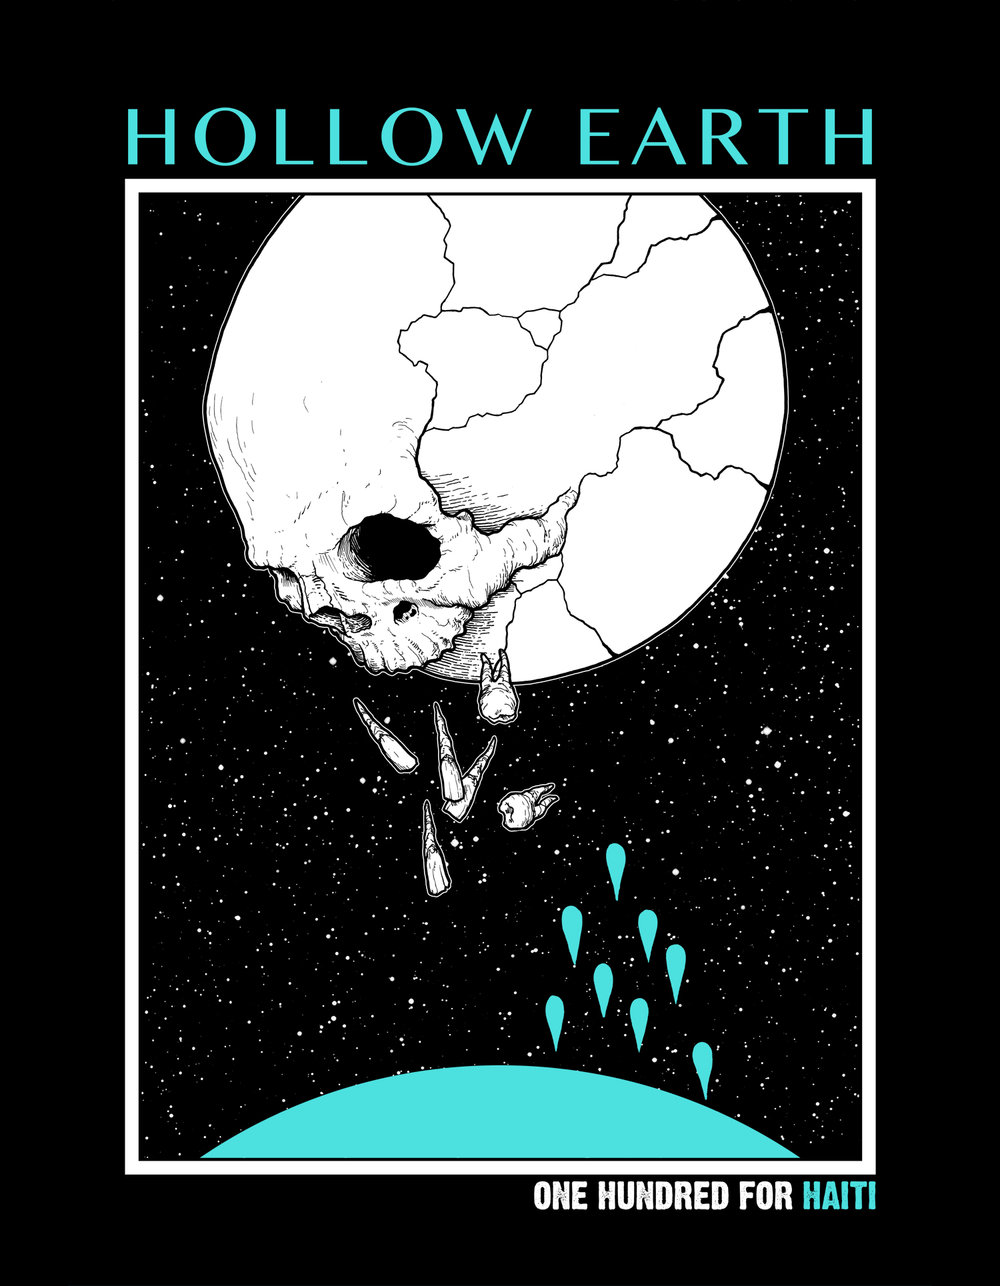 Shirt design for Hollow Earth/One Hundred For Haiti